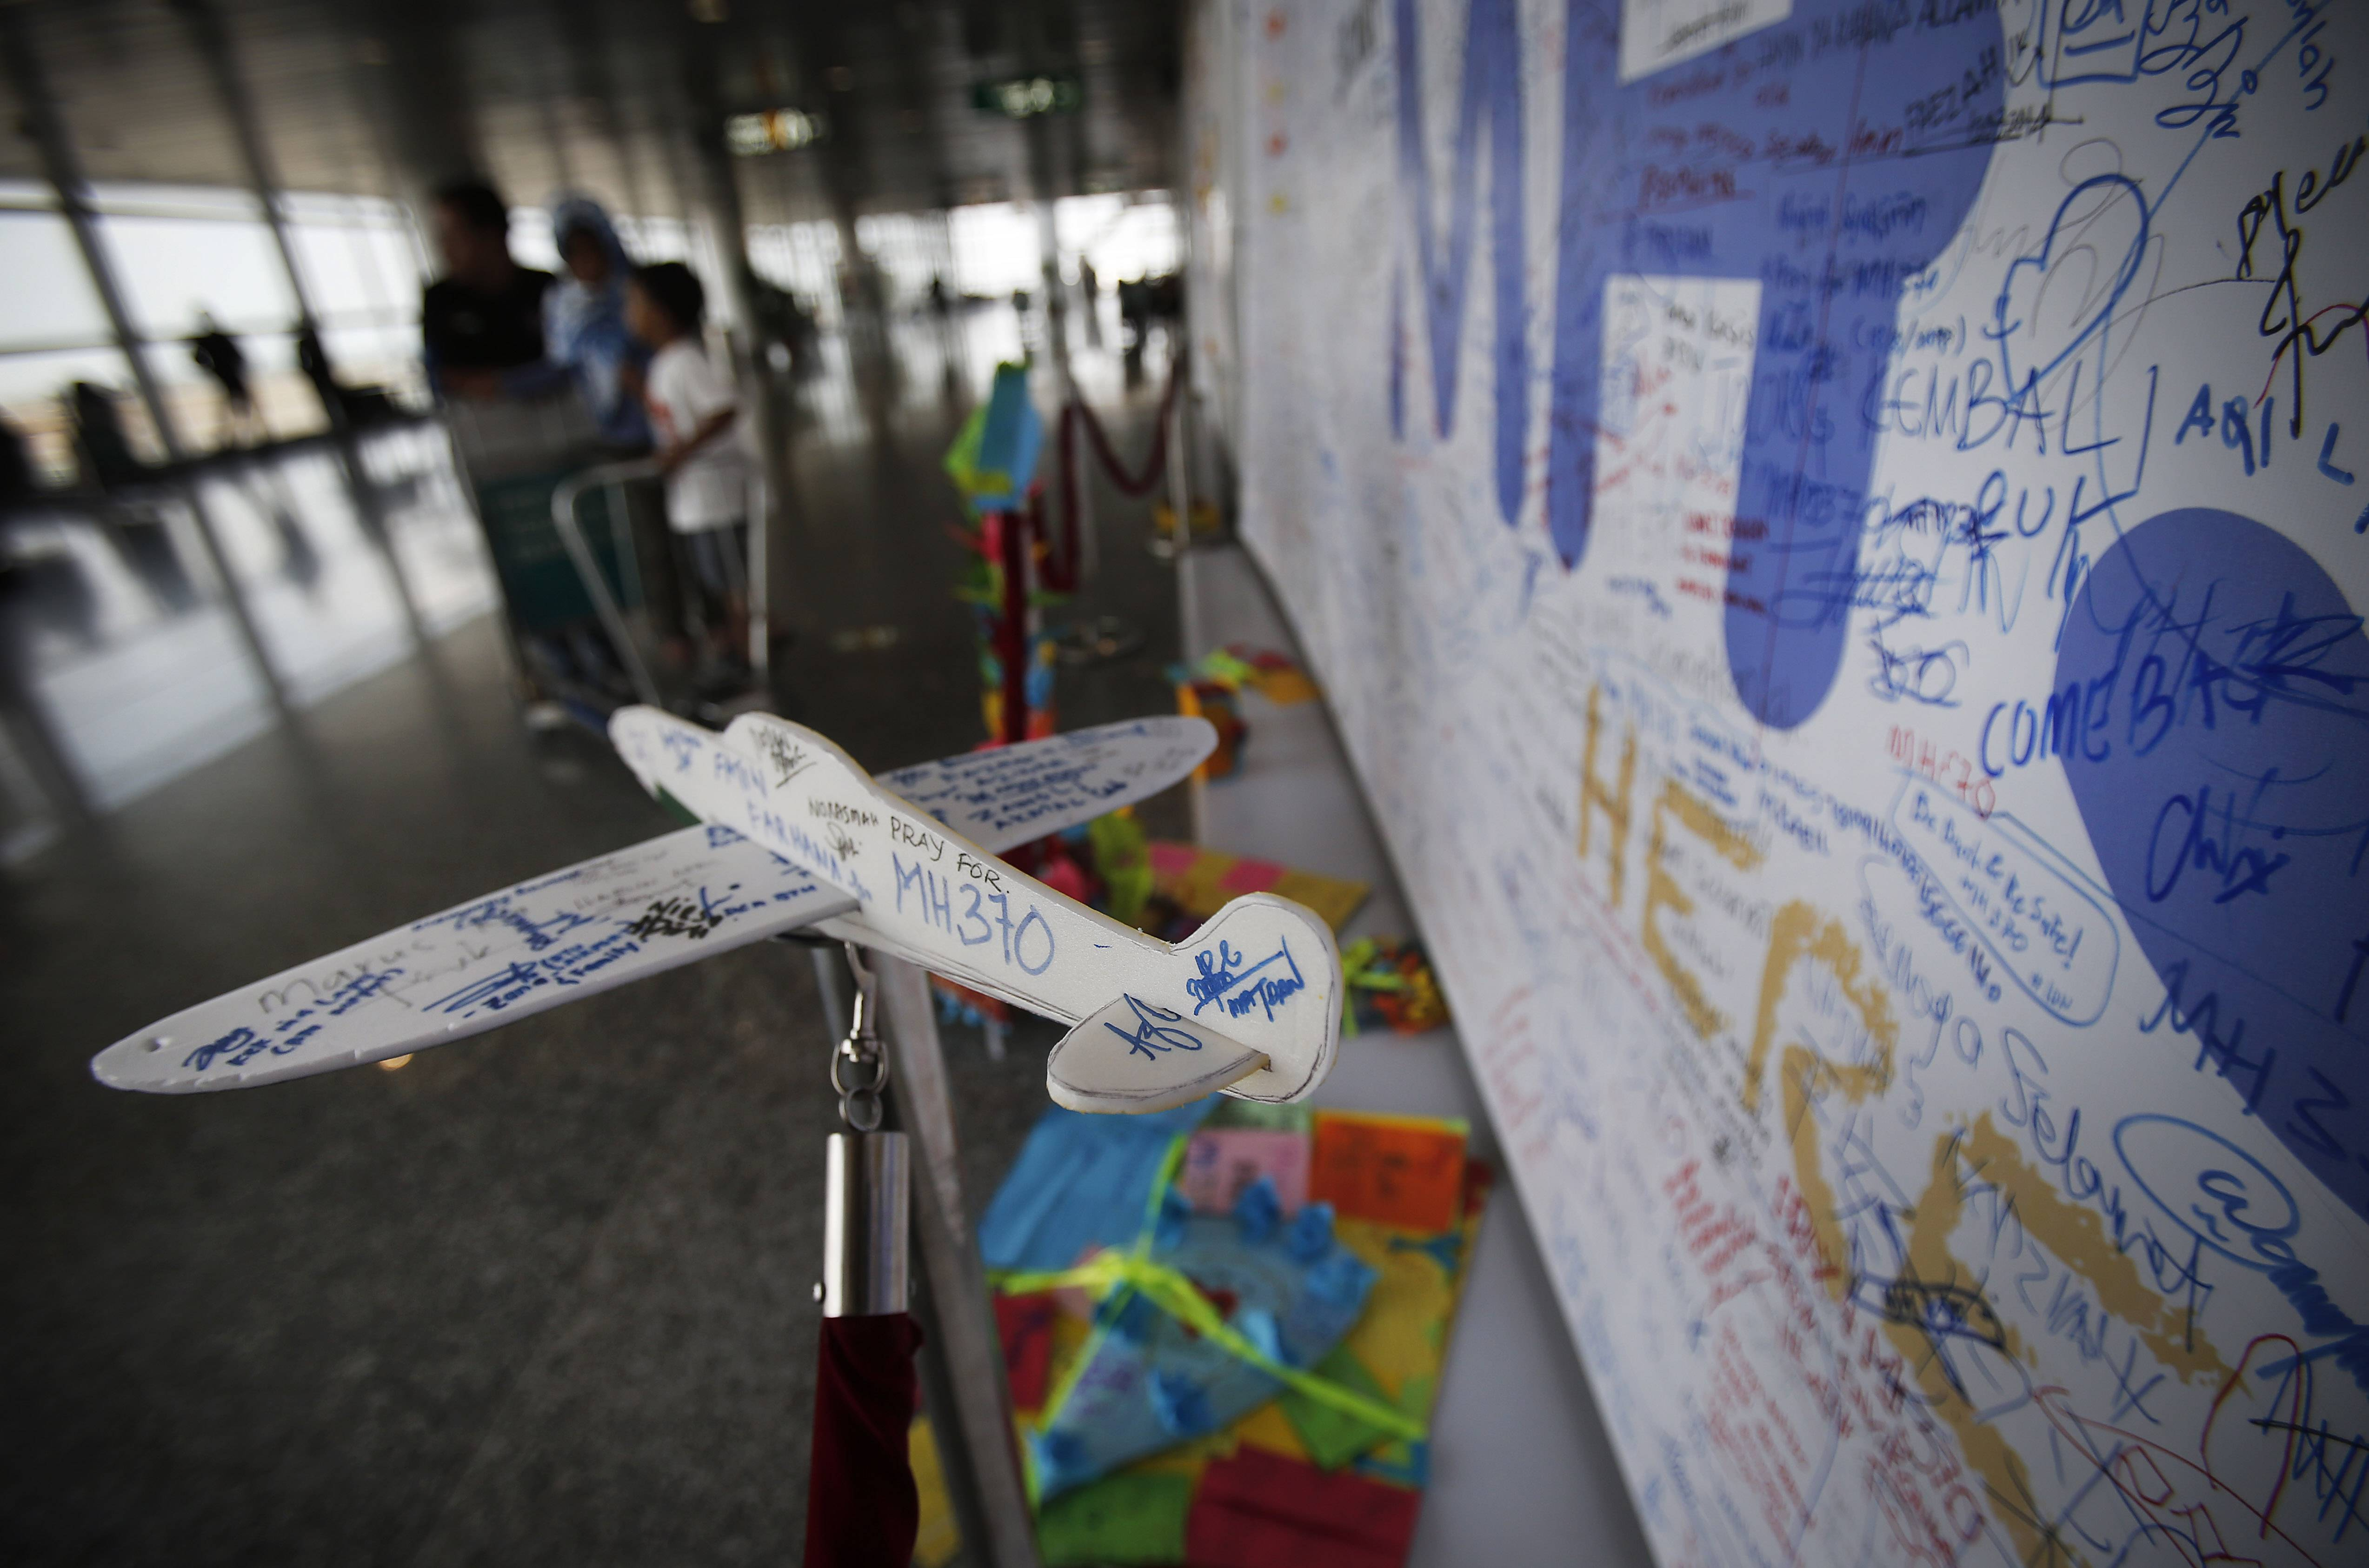 A foam plane with messages and cards with personalized messages dedicated to people involved with the missing Malaysia Airlines jetliner MH370, are placed in the viewing gallery at Kuala Lumpur International Airport, Saturday, March 15, 2014 in Sepang, Malaysia. A Malaysian passenger jet missing for more than a week had its communications deliberately disabled and its last signal came about seven and a half hours after takeoff, meaning it could have ended up as far as Kazakhstan or deep in the southern Indian Ocean, Malaysia's Prime Minister Najib Razak said Saturday.